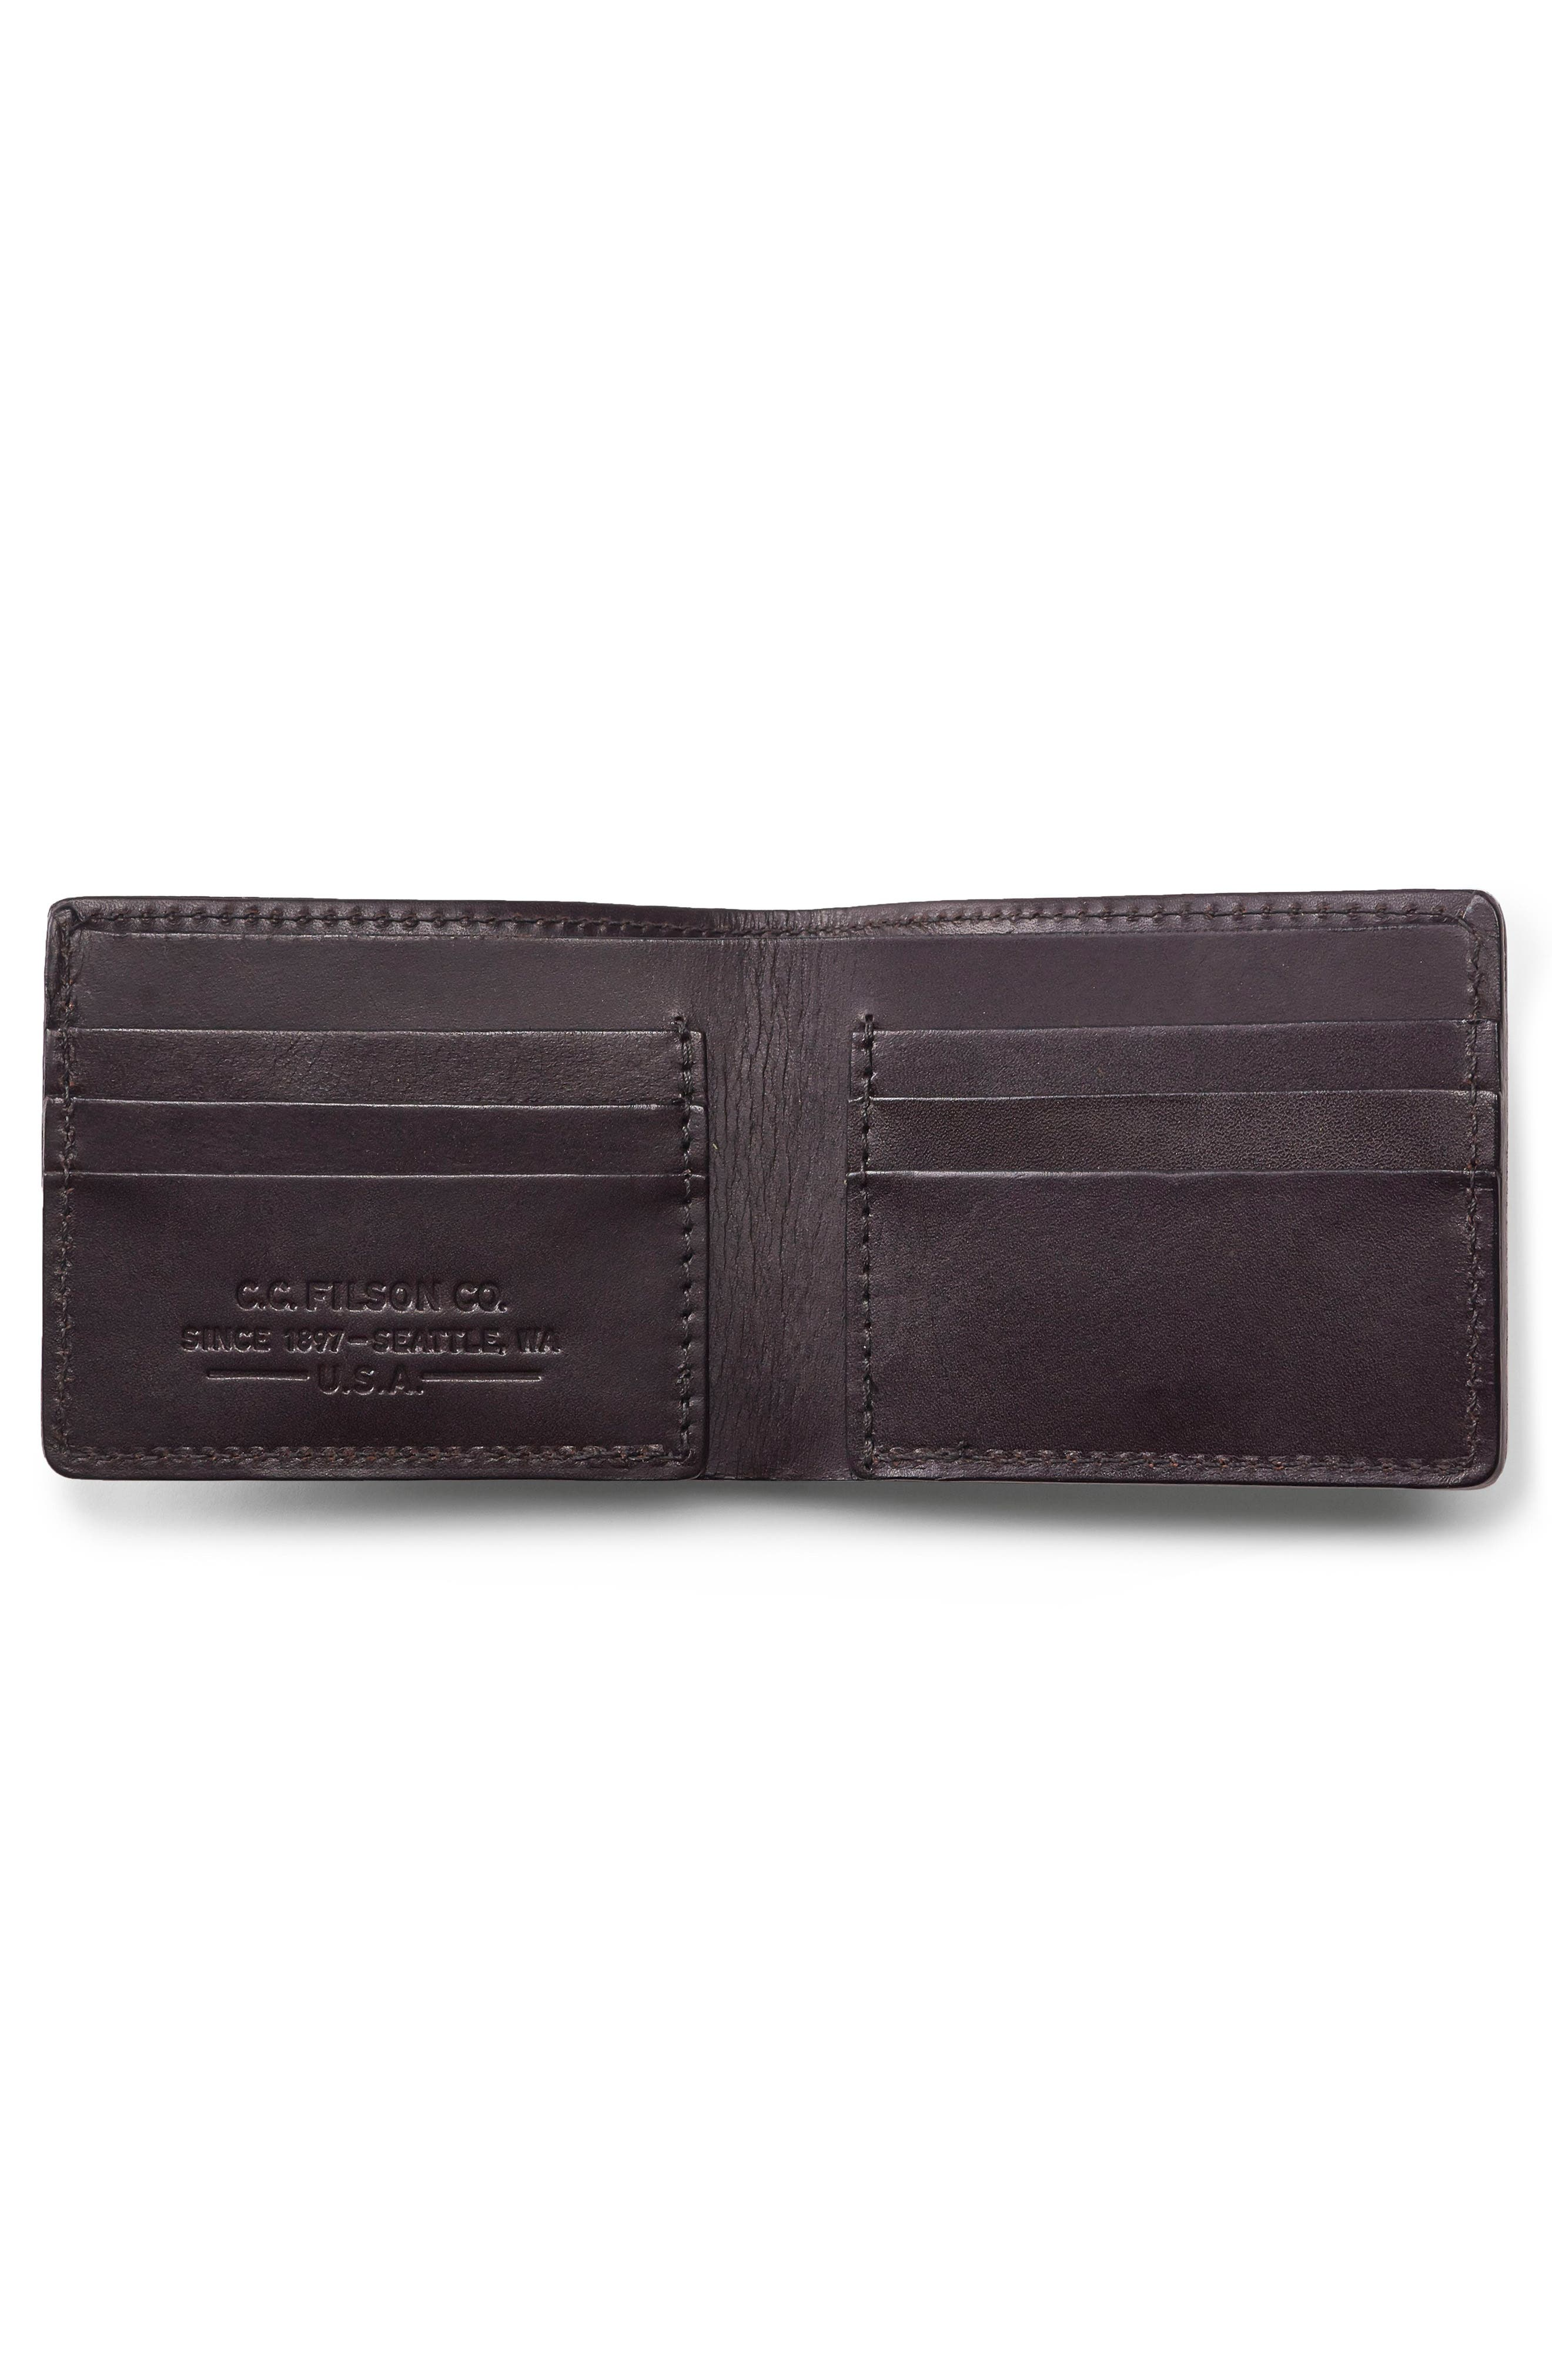 Leather Bifold Leather Wallet,                             Alternate thumbnail 2, color,                             BROWN